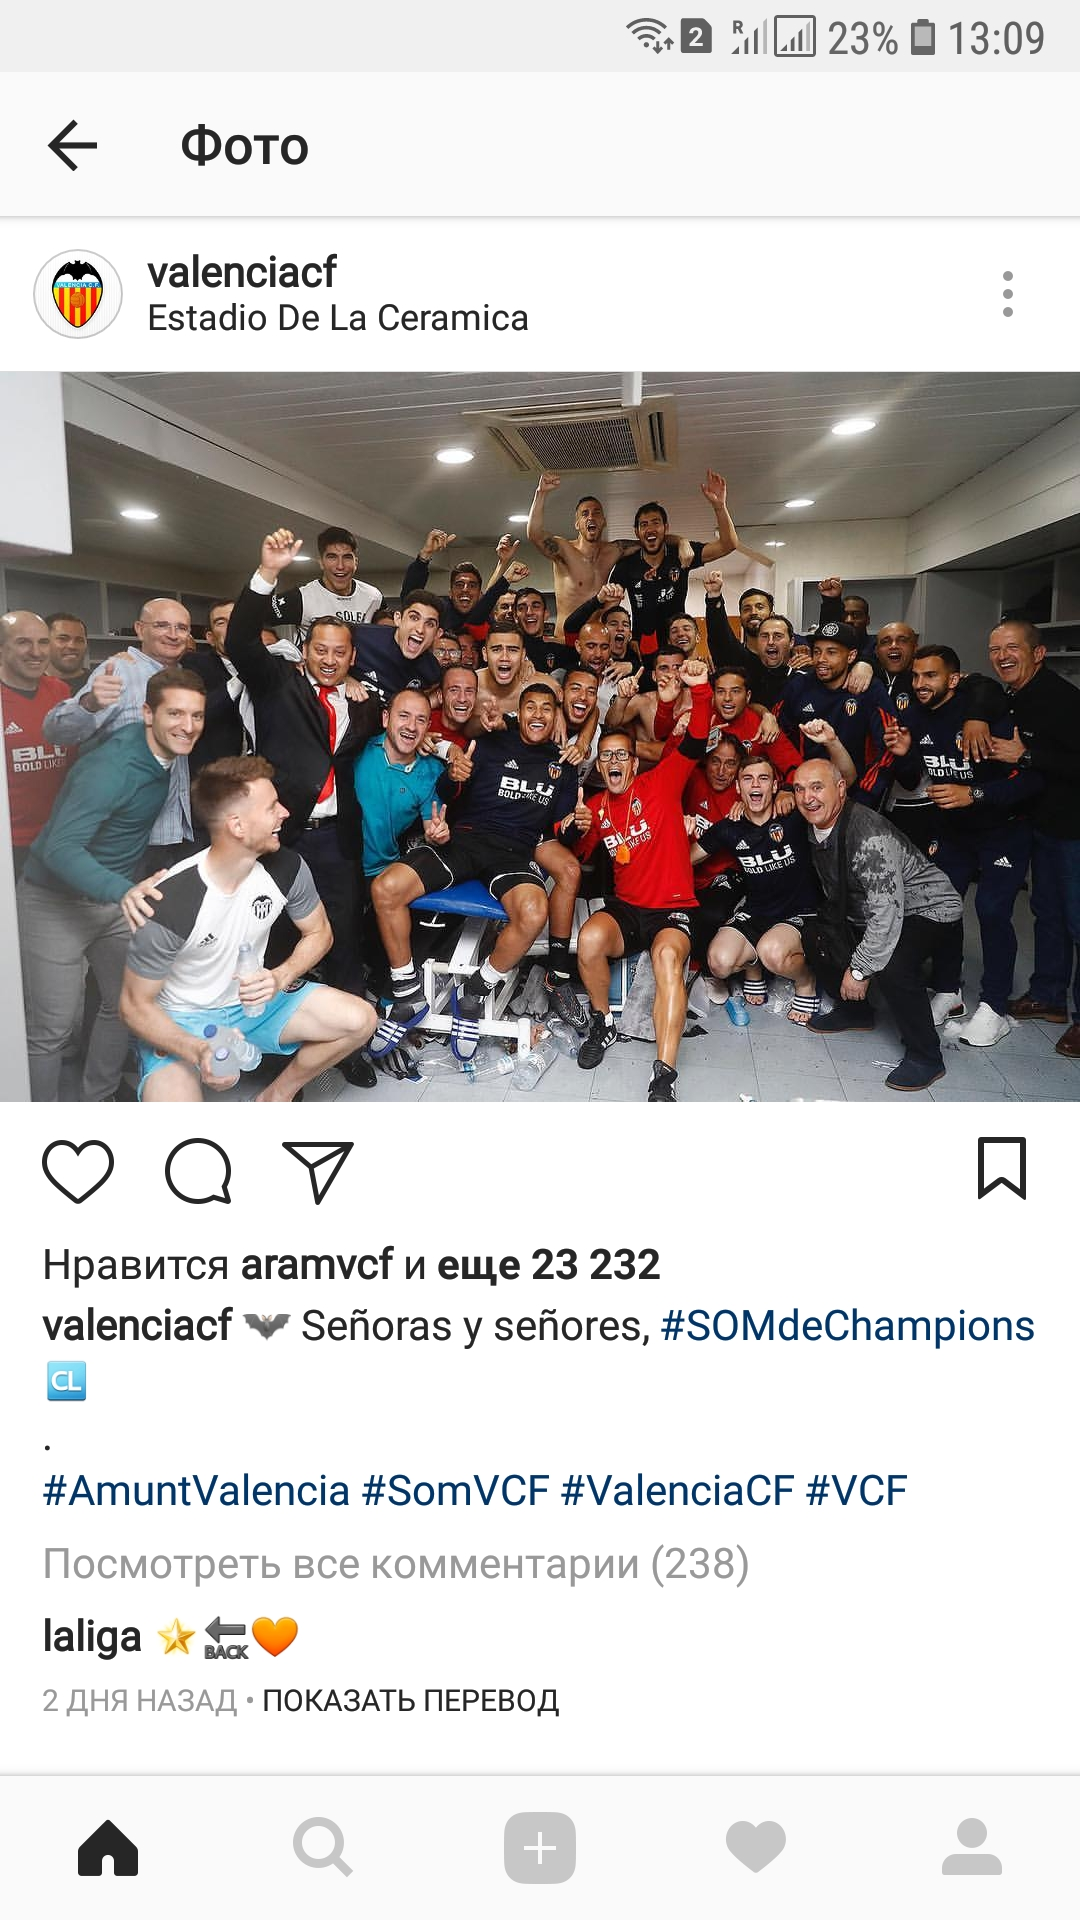 Screenshot_20180508-130910_Instagram.jpg